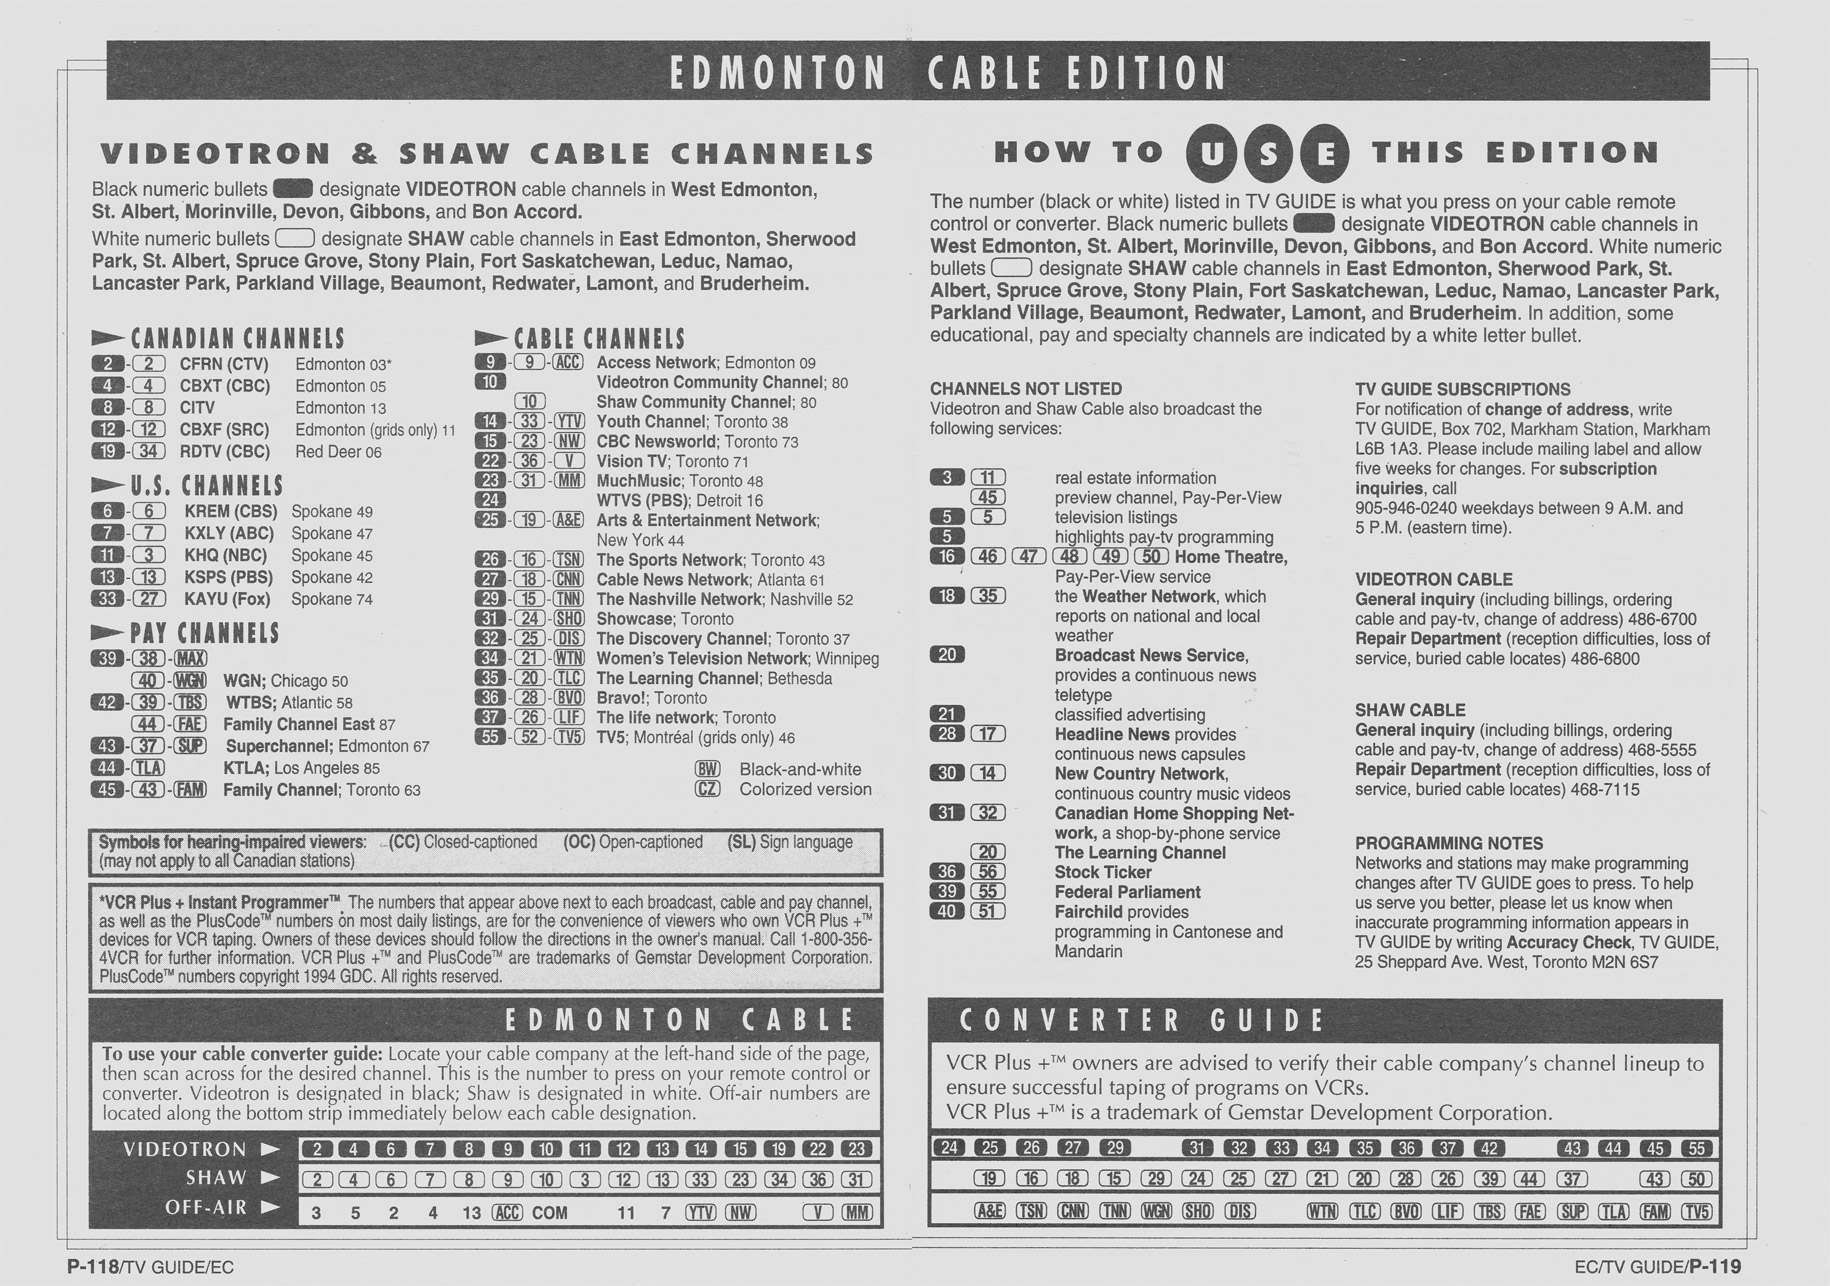 TV Guide December 31 1994 Edmonton Cable Edition Cable Converter Guide